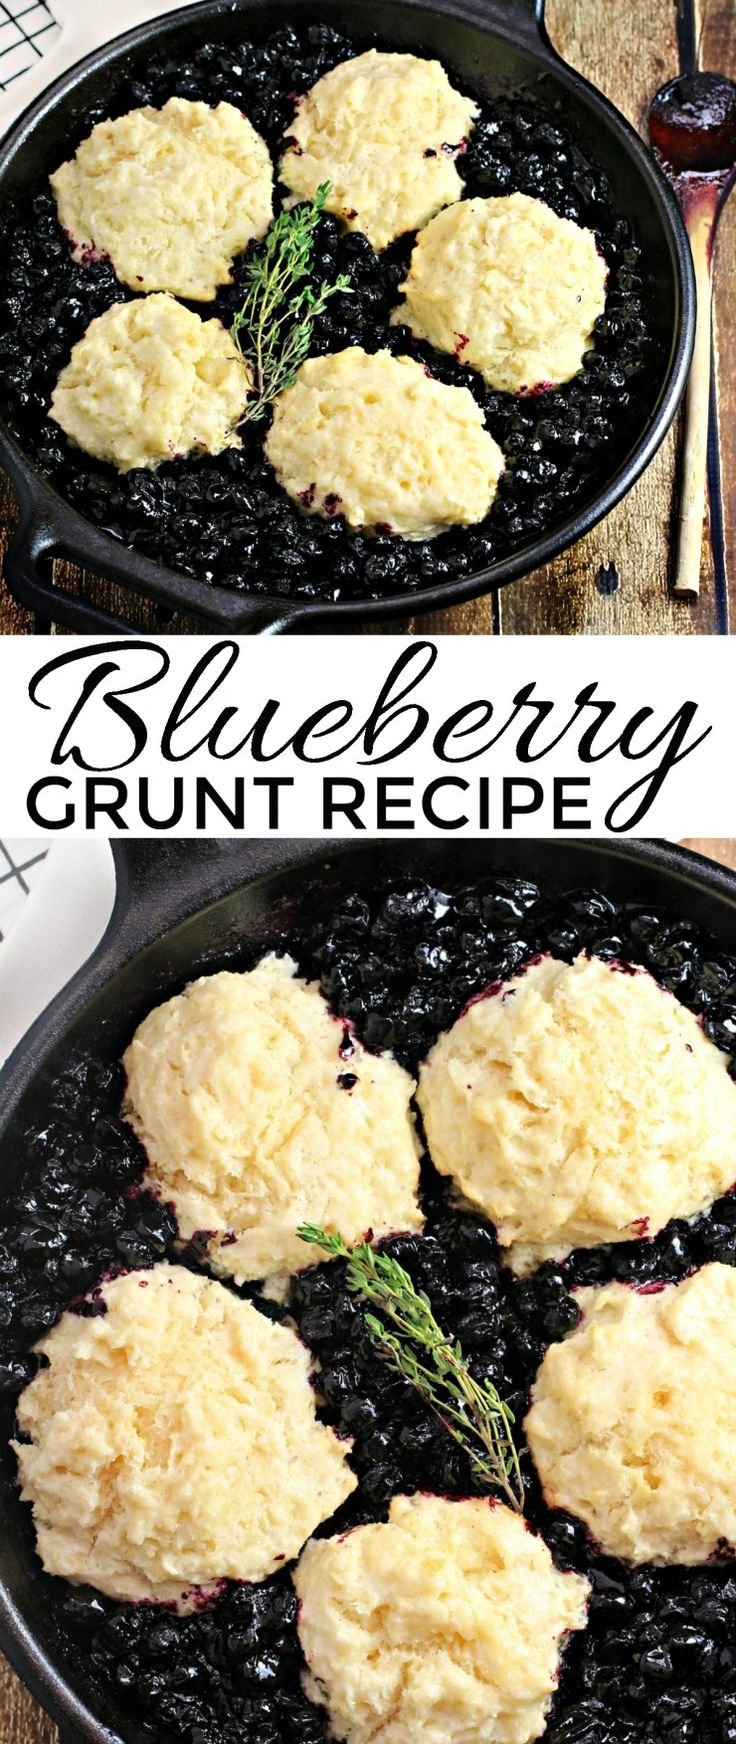 A Blueberry Grunt is a cobbler that is cooked on the stove top or over a campfire instead of in the oven. The drop biscuits steam to perfection in a bed of blueberries. This is a camping recipe that will really have you looking forward to dessert!